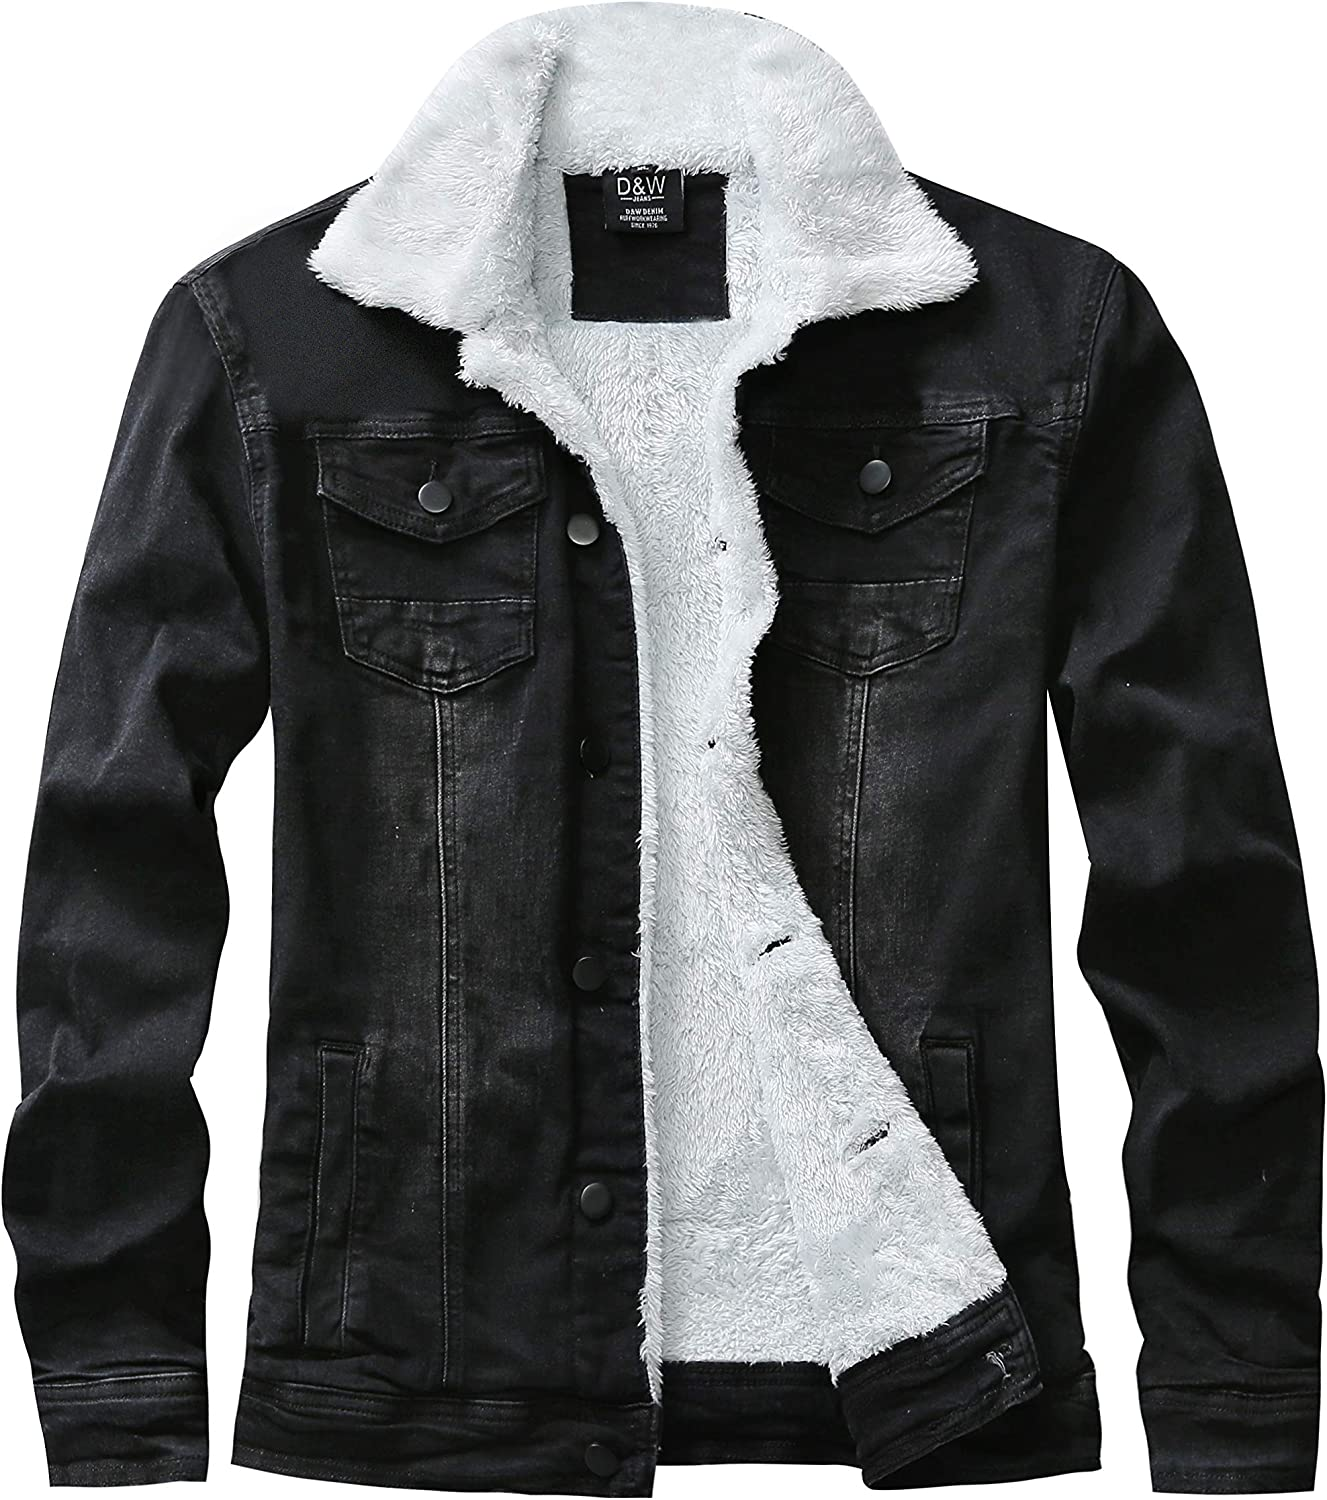 Vintage Fleece Lined Jacket, Distressed Denim Jacket with Faux Fur All Through-out, Slim Fit Sherpa Jean Motorcycle Jacket